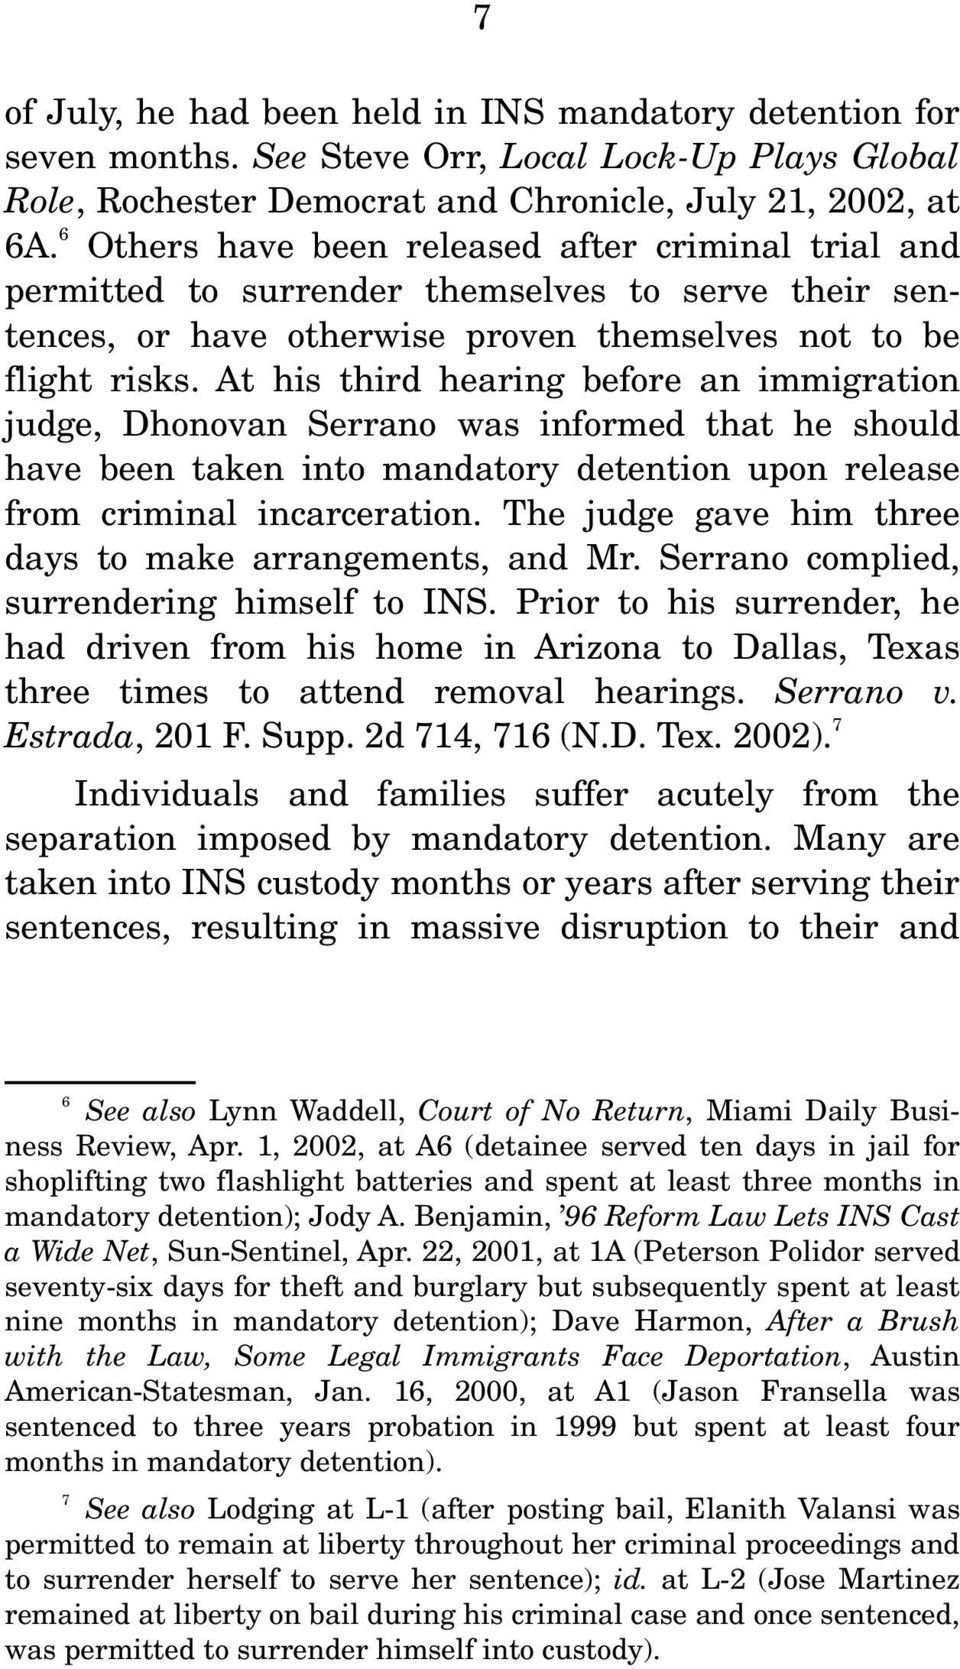 At his third hearing before an immigration judge, Dhonovan Serrano was informed that he should have been taken into mandatory detention upon release from criminal incarceration.